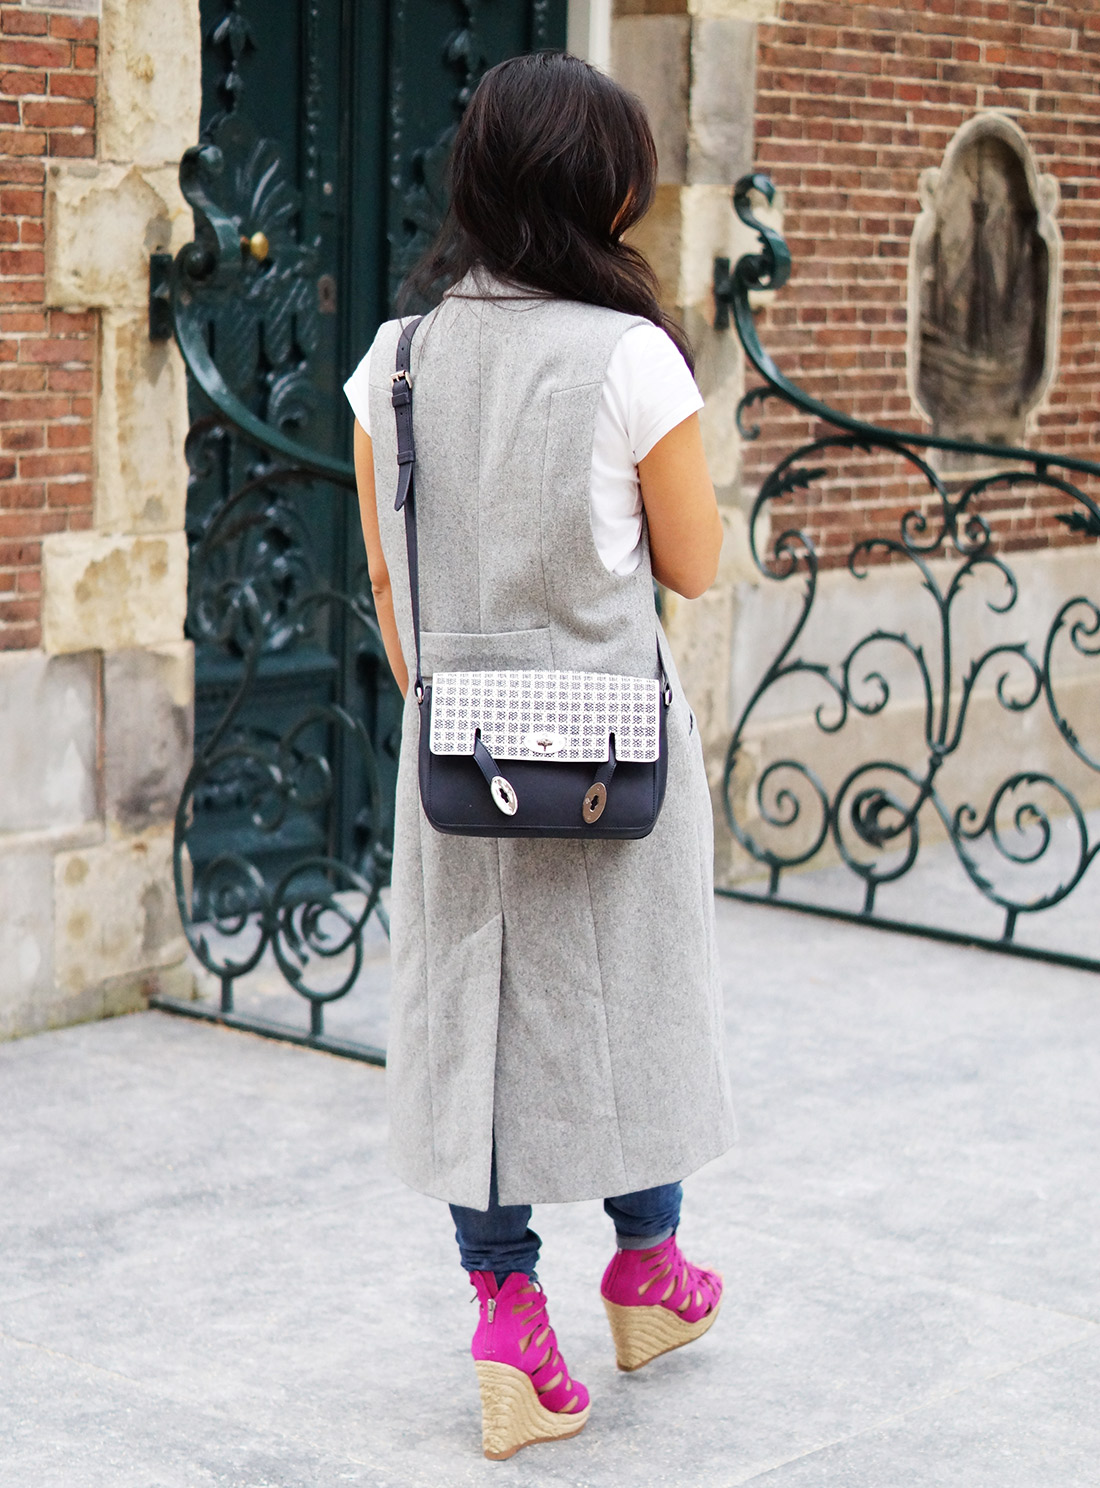 Bag-at-You---Fashion-blog---The-bag-of-Hashtag-by-Lily---When-did-you-buy-this-Mulberry-bag